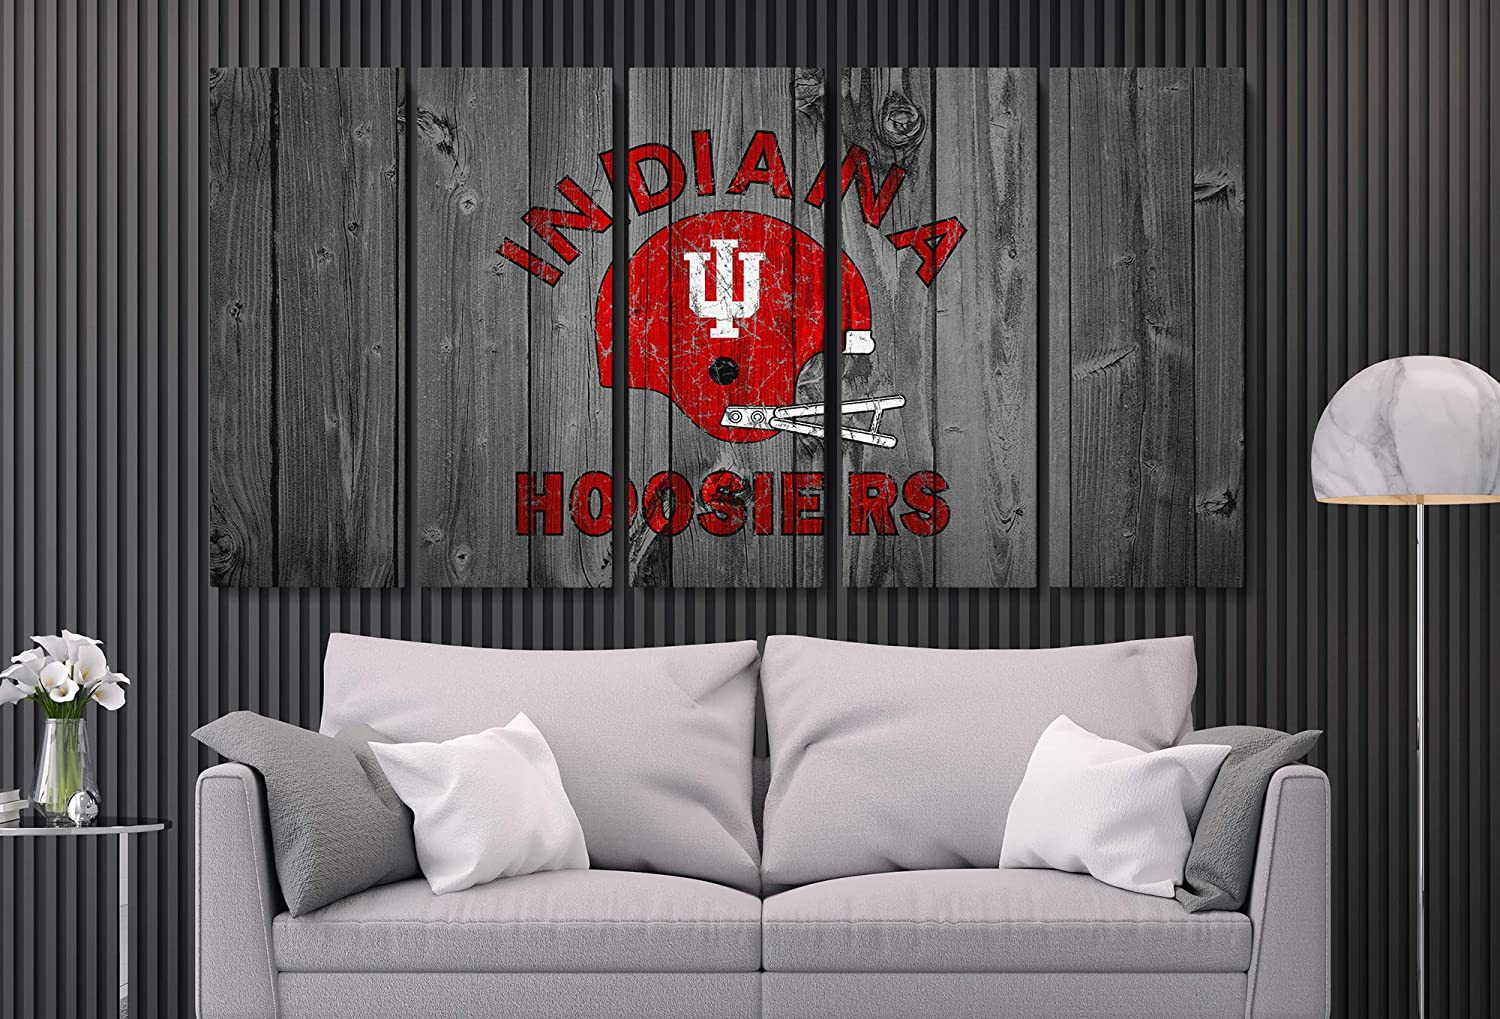 Indiana Hoosiers American Football College University Team Art Decor Wall Poster Canvas Print. Ready to Hang. Made in USA (5 Piece Mega)